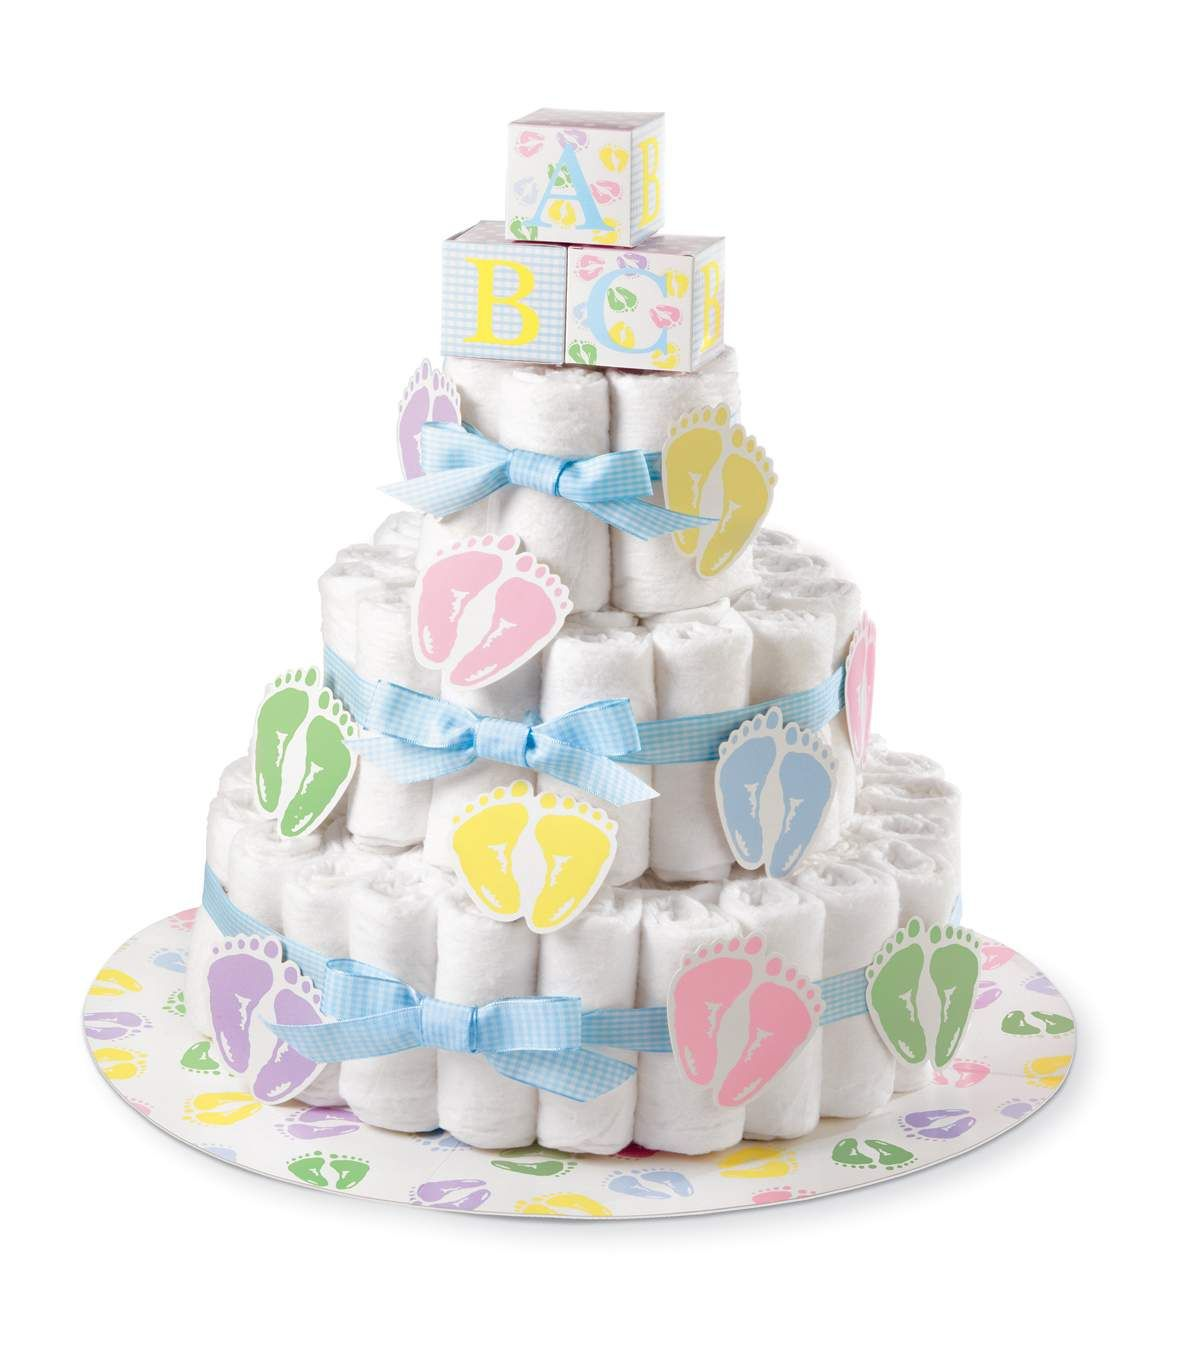 Wilton diaper cake kit create a diaper cake for the baby shower wilton diaper cake kit create a diaper cake for the baby shower it publicscrutiny Image collections